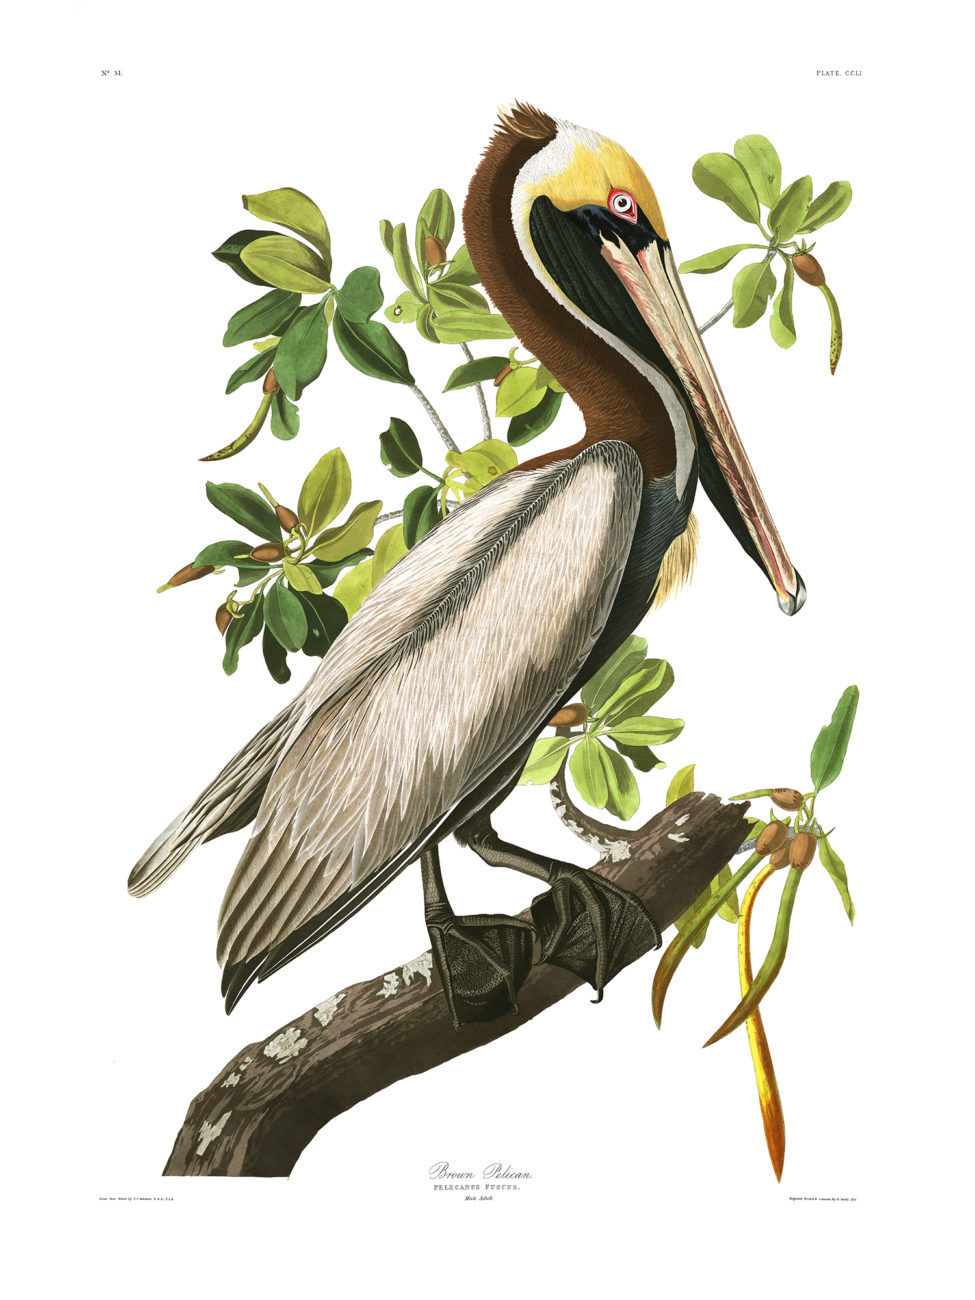 Plate 251 - Brown Pelican